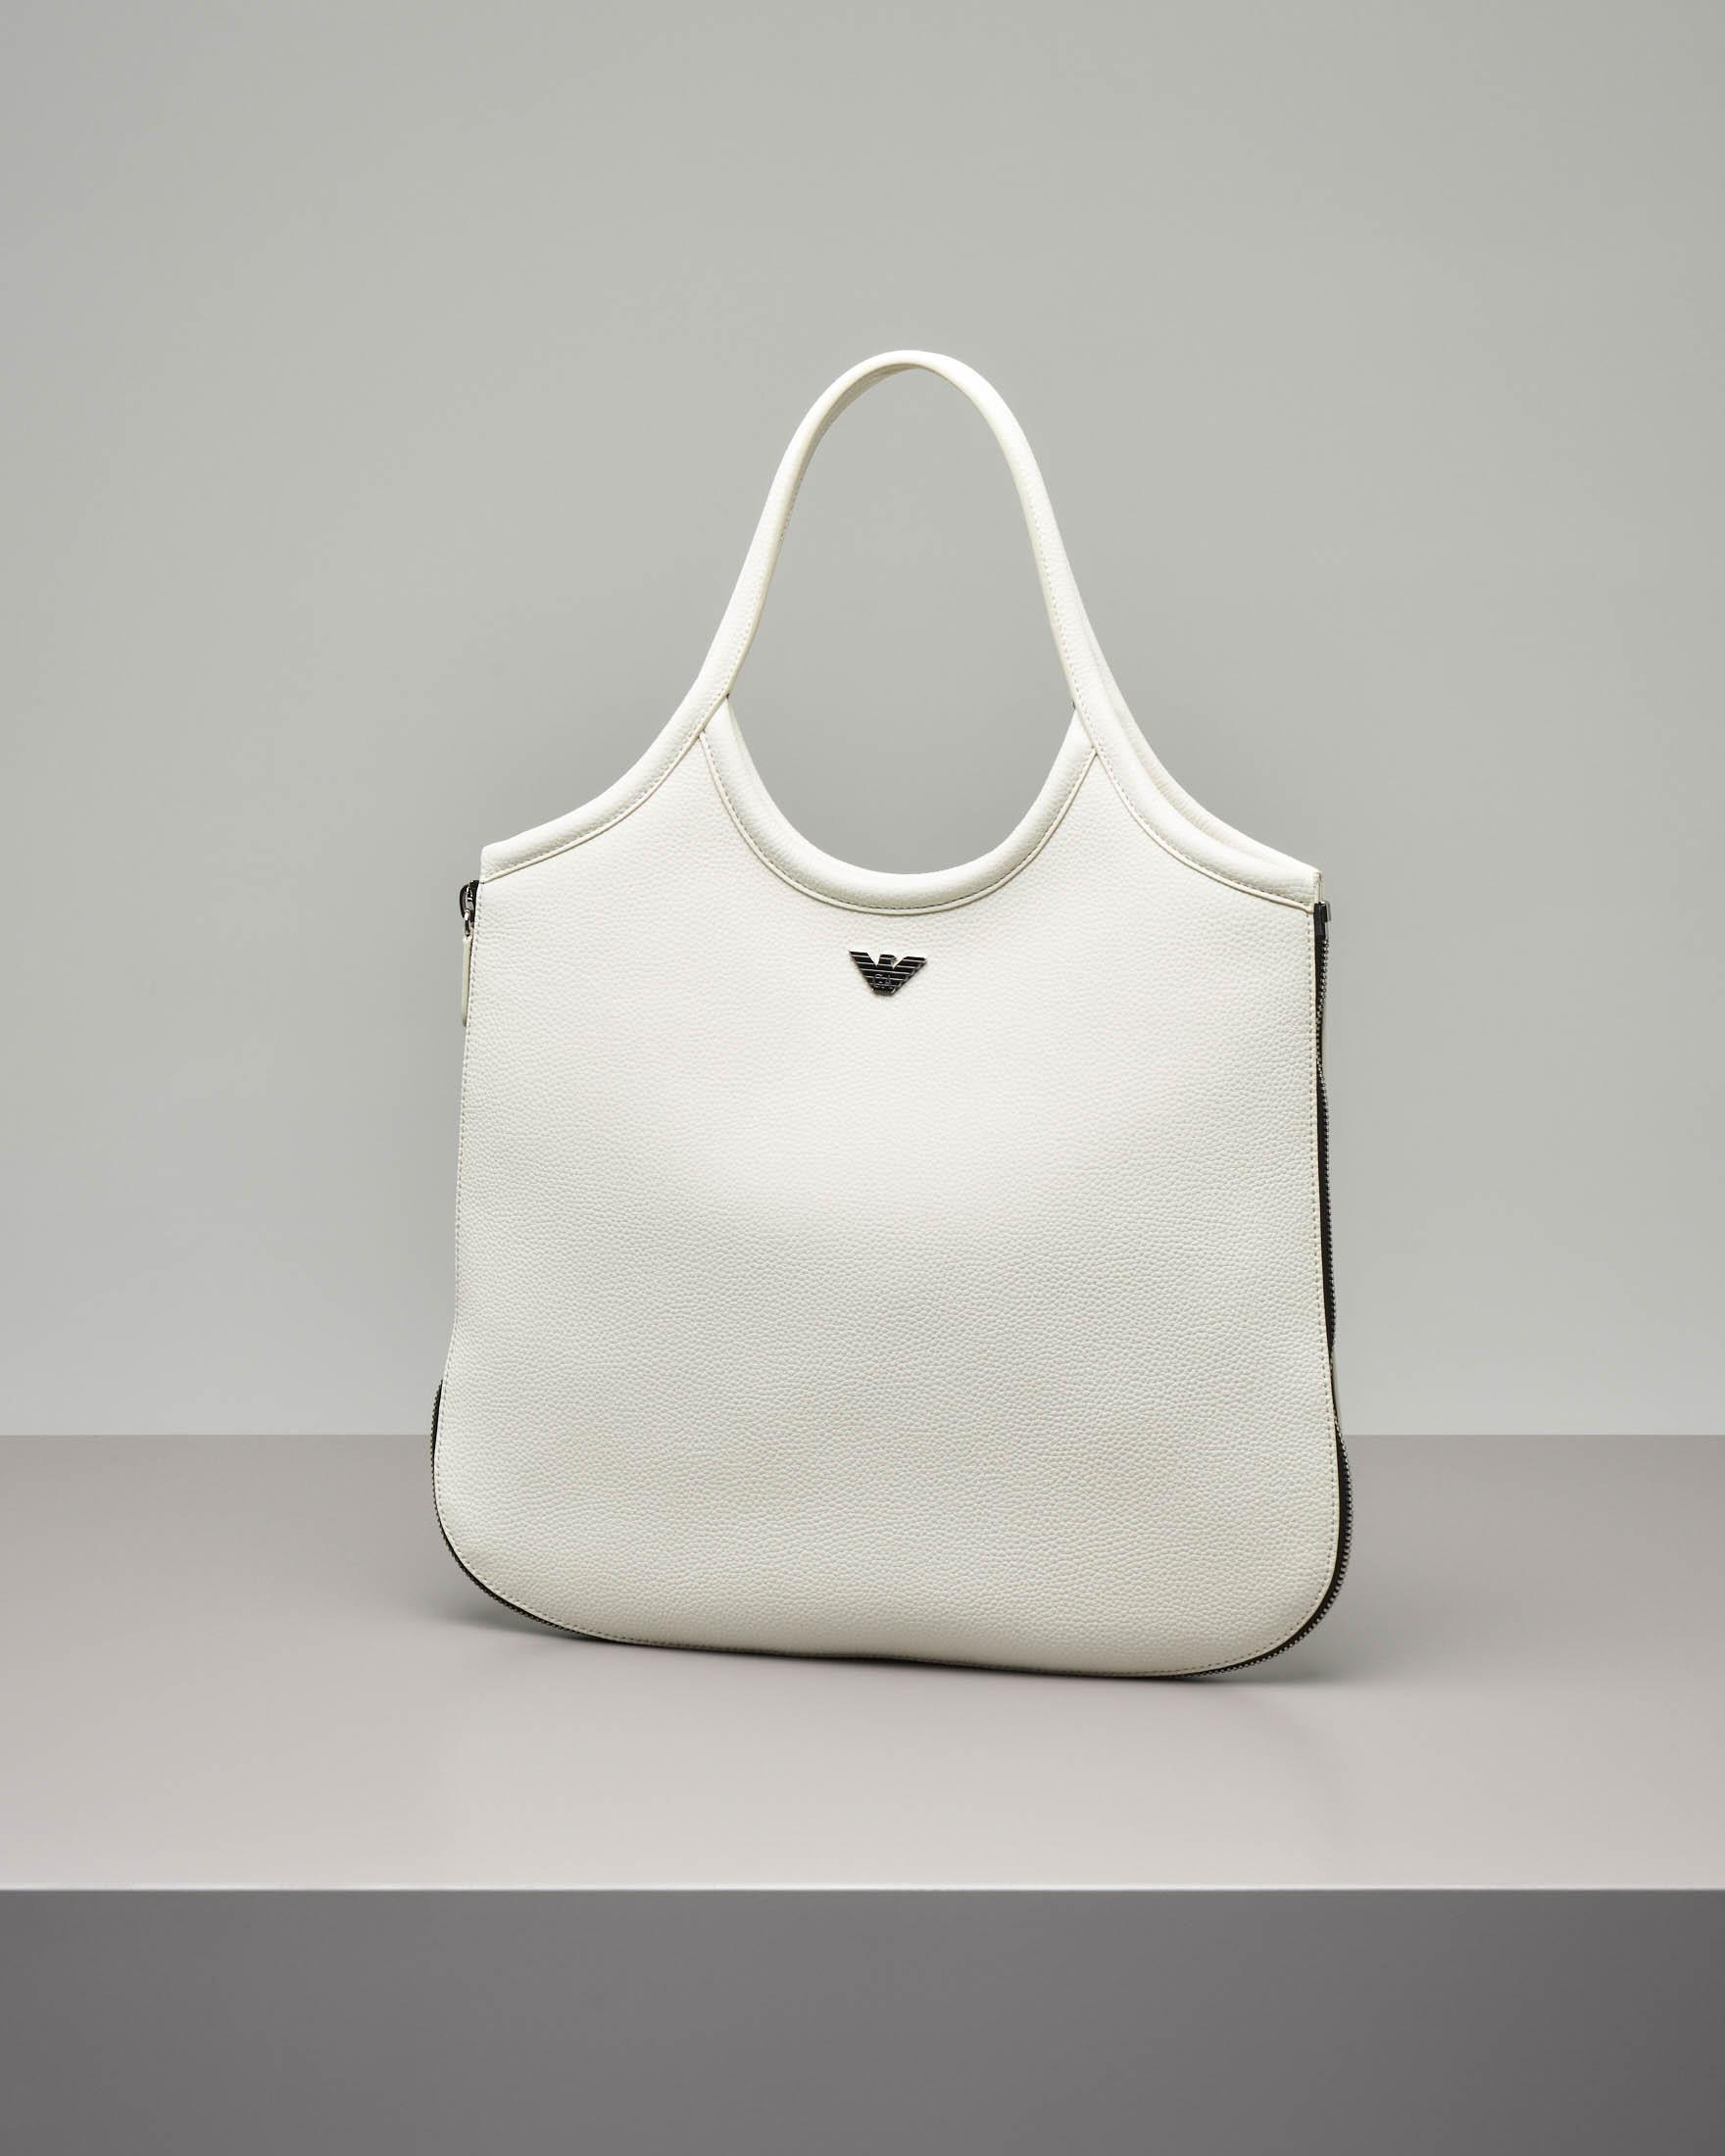 6dd62404f67 Borsa hobo in pelle color latte · Emporio Armani